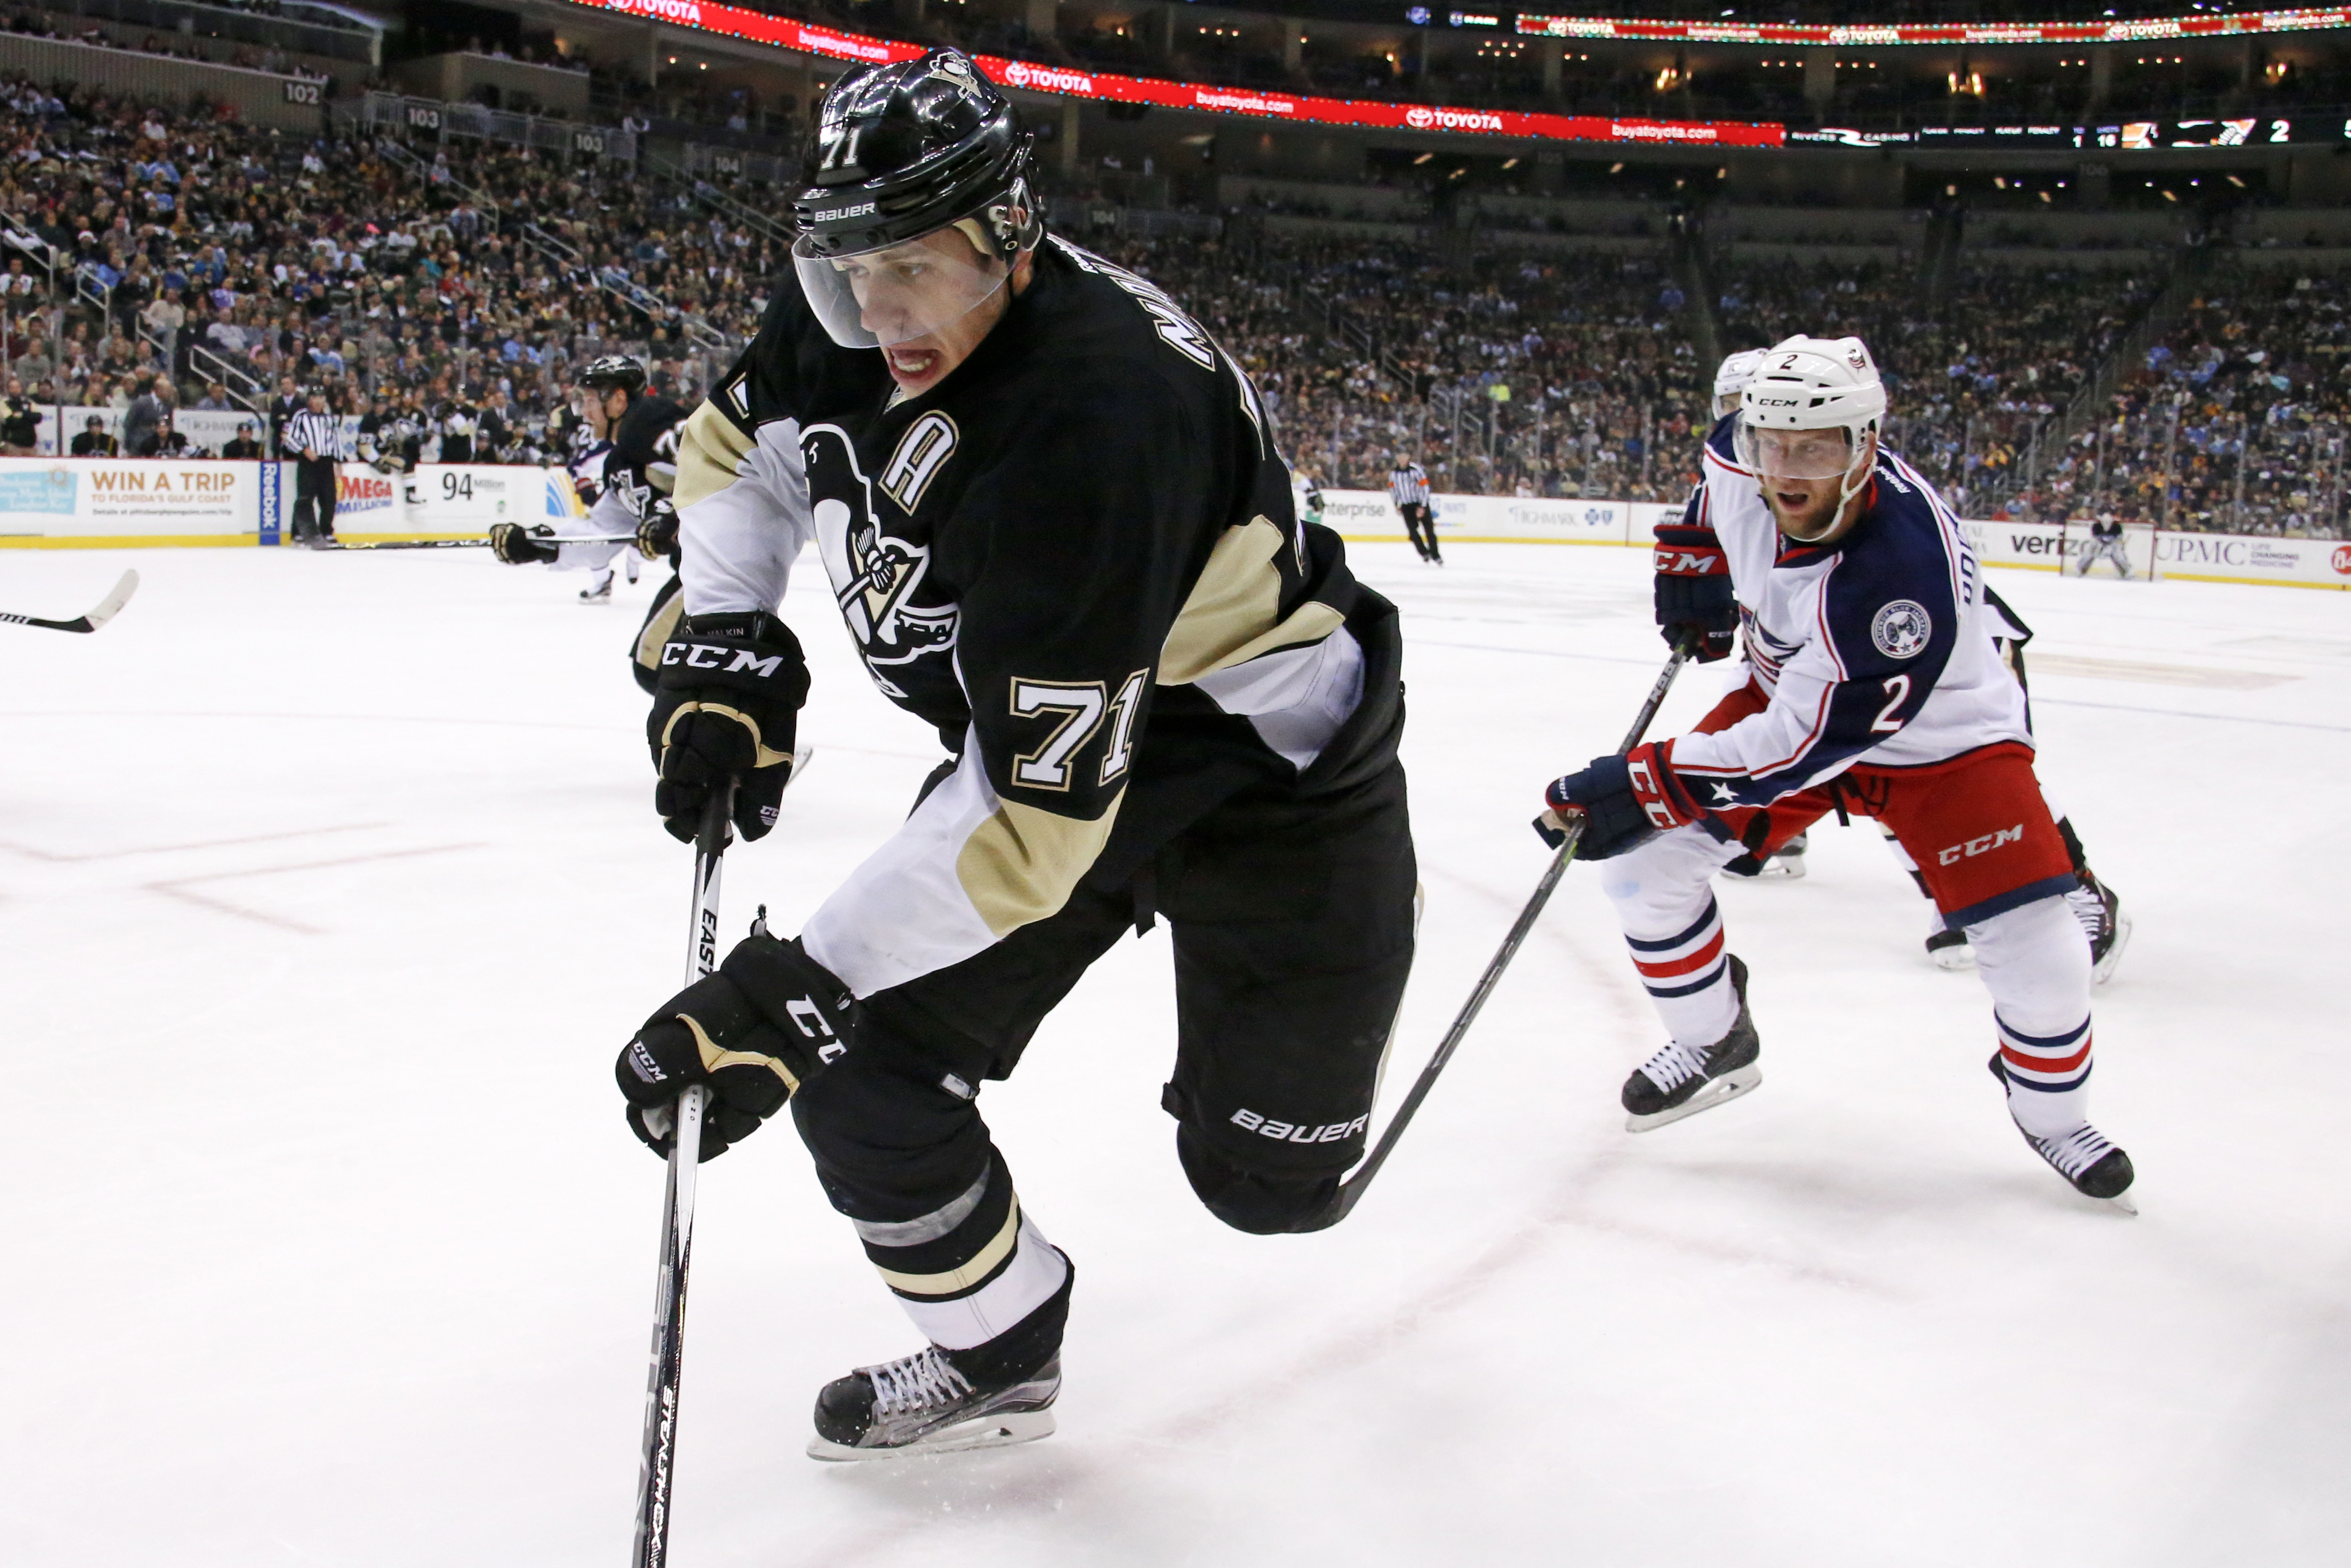 Pittsburgh Penguins' Evgeni Malkin (71) works the puck in the corner against Columbus Blue Jackets' Andrew Bodnarchuk (2) during the second period of an NHL hockey game in Pittsburgh, Monday, Dec. 21, 2015. (AP Photo/Gene J. Puskar)